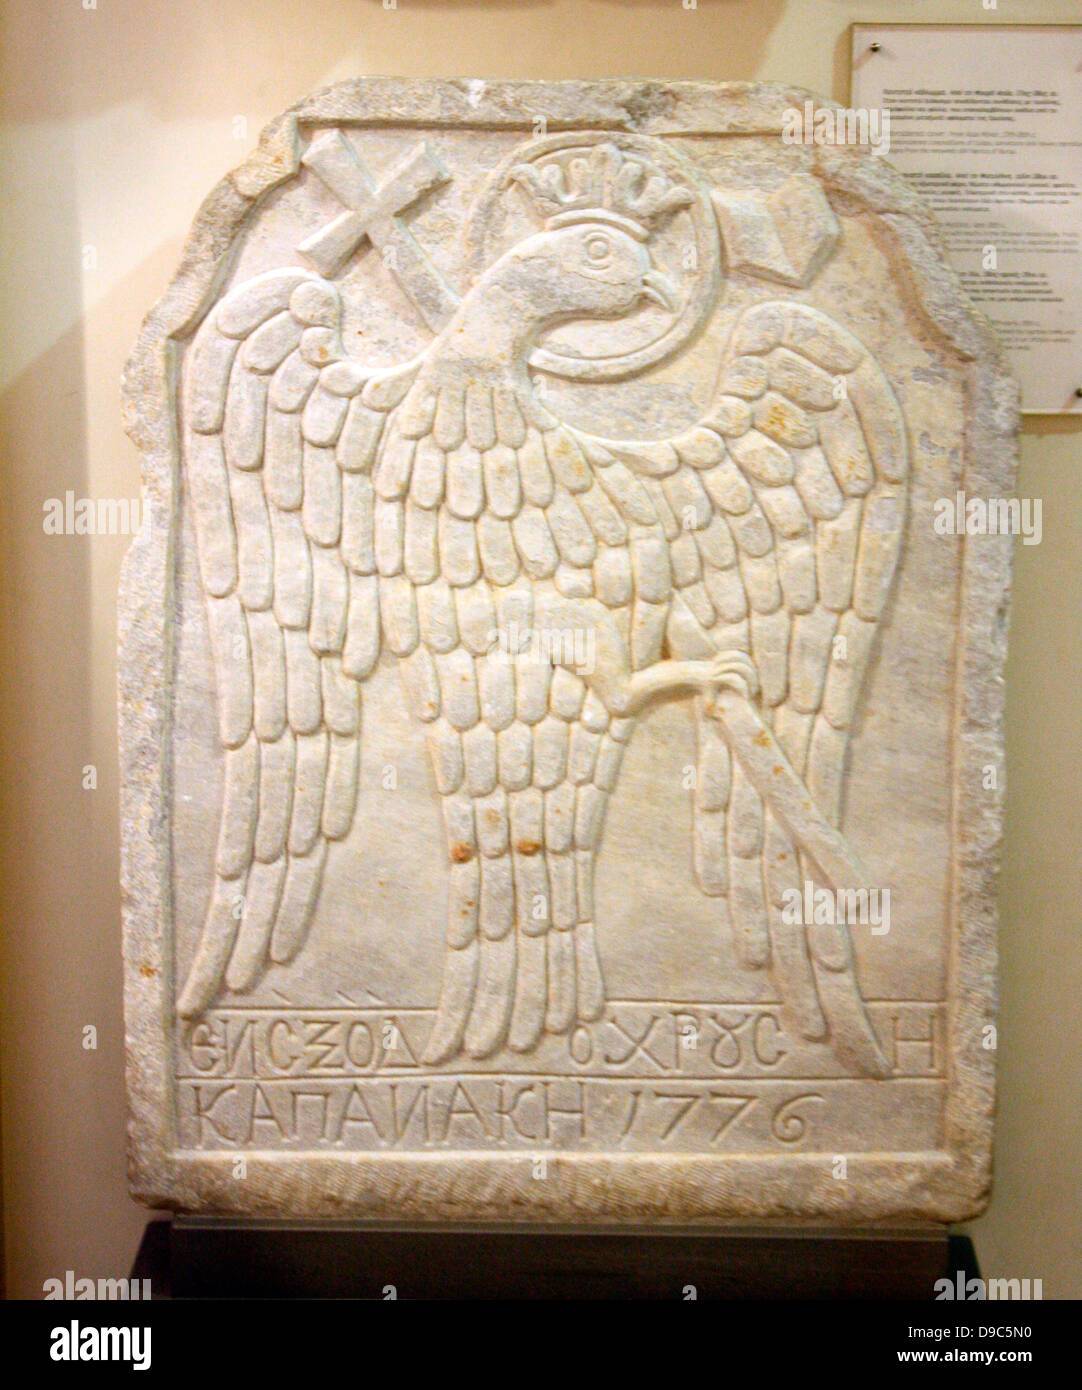 Greek grave stone From Chios, 18th, early 19th century. - Stock Image